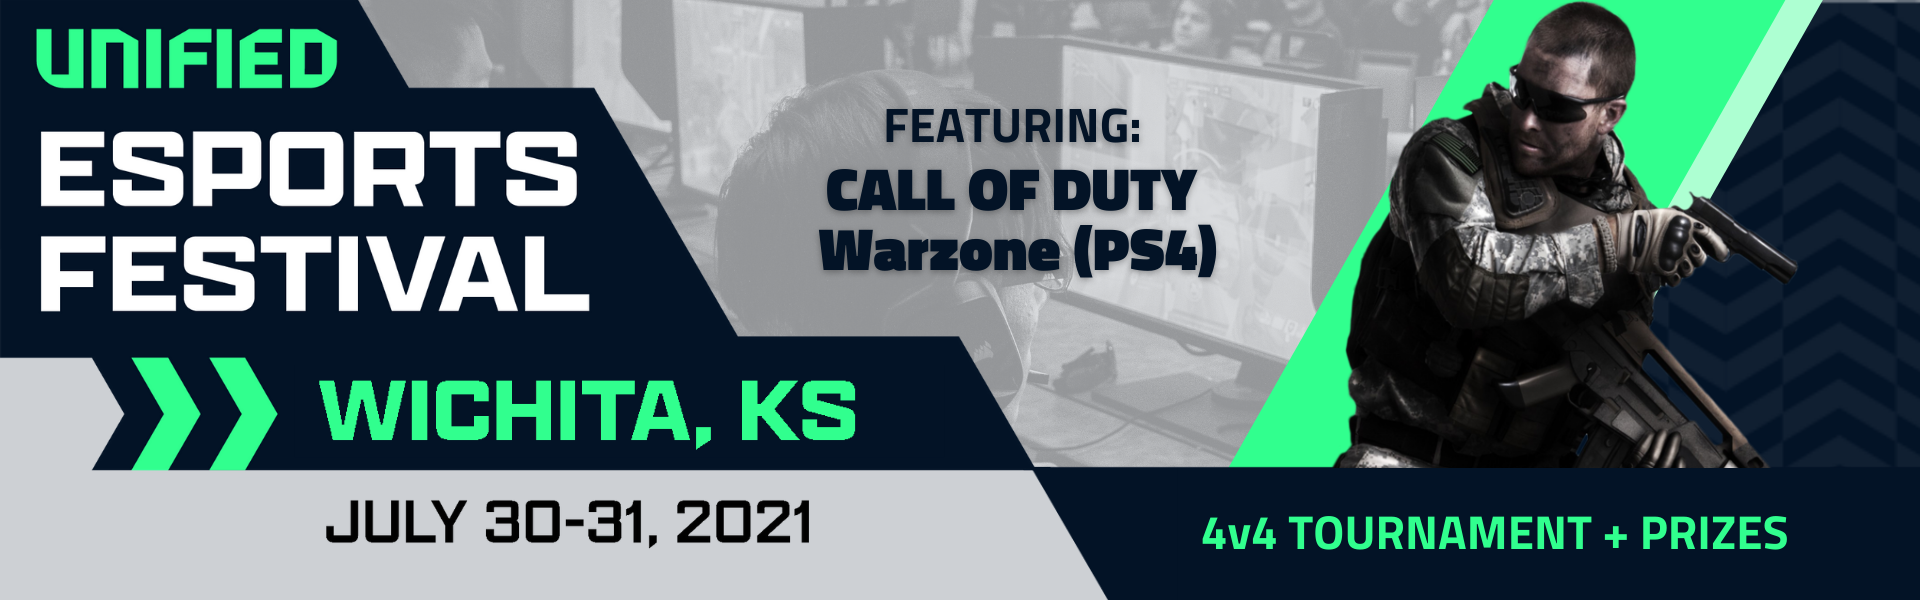 EF:ICT Featuring Call of Duty (PS4)